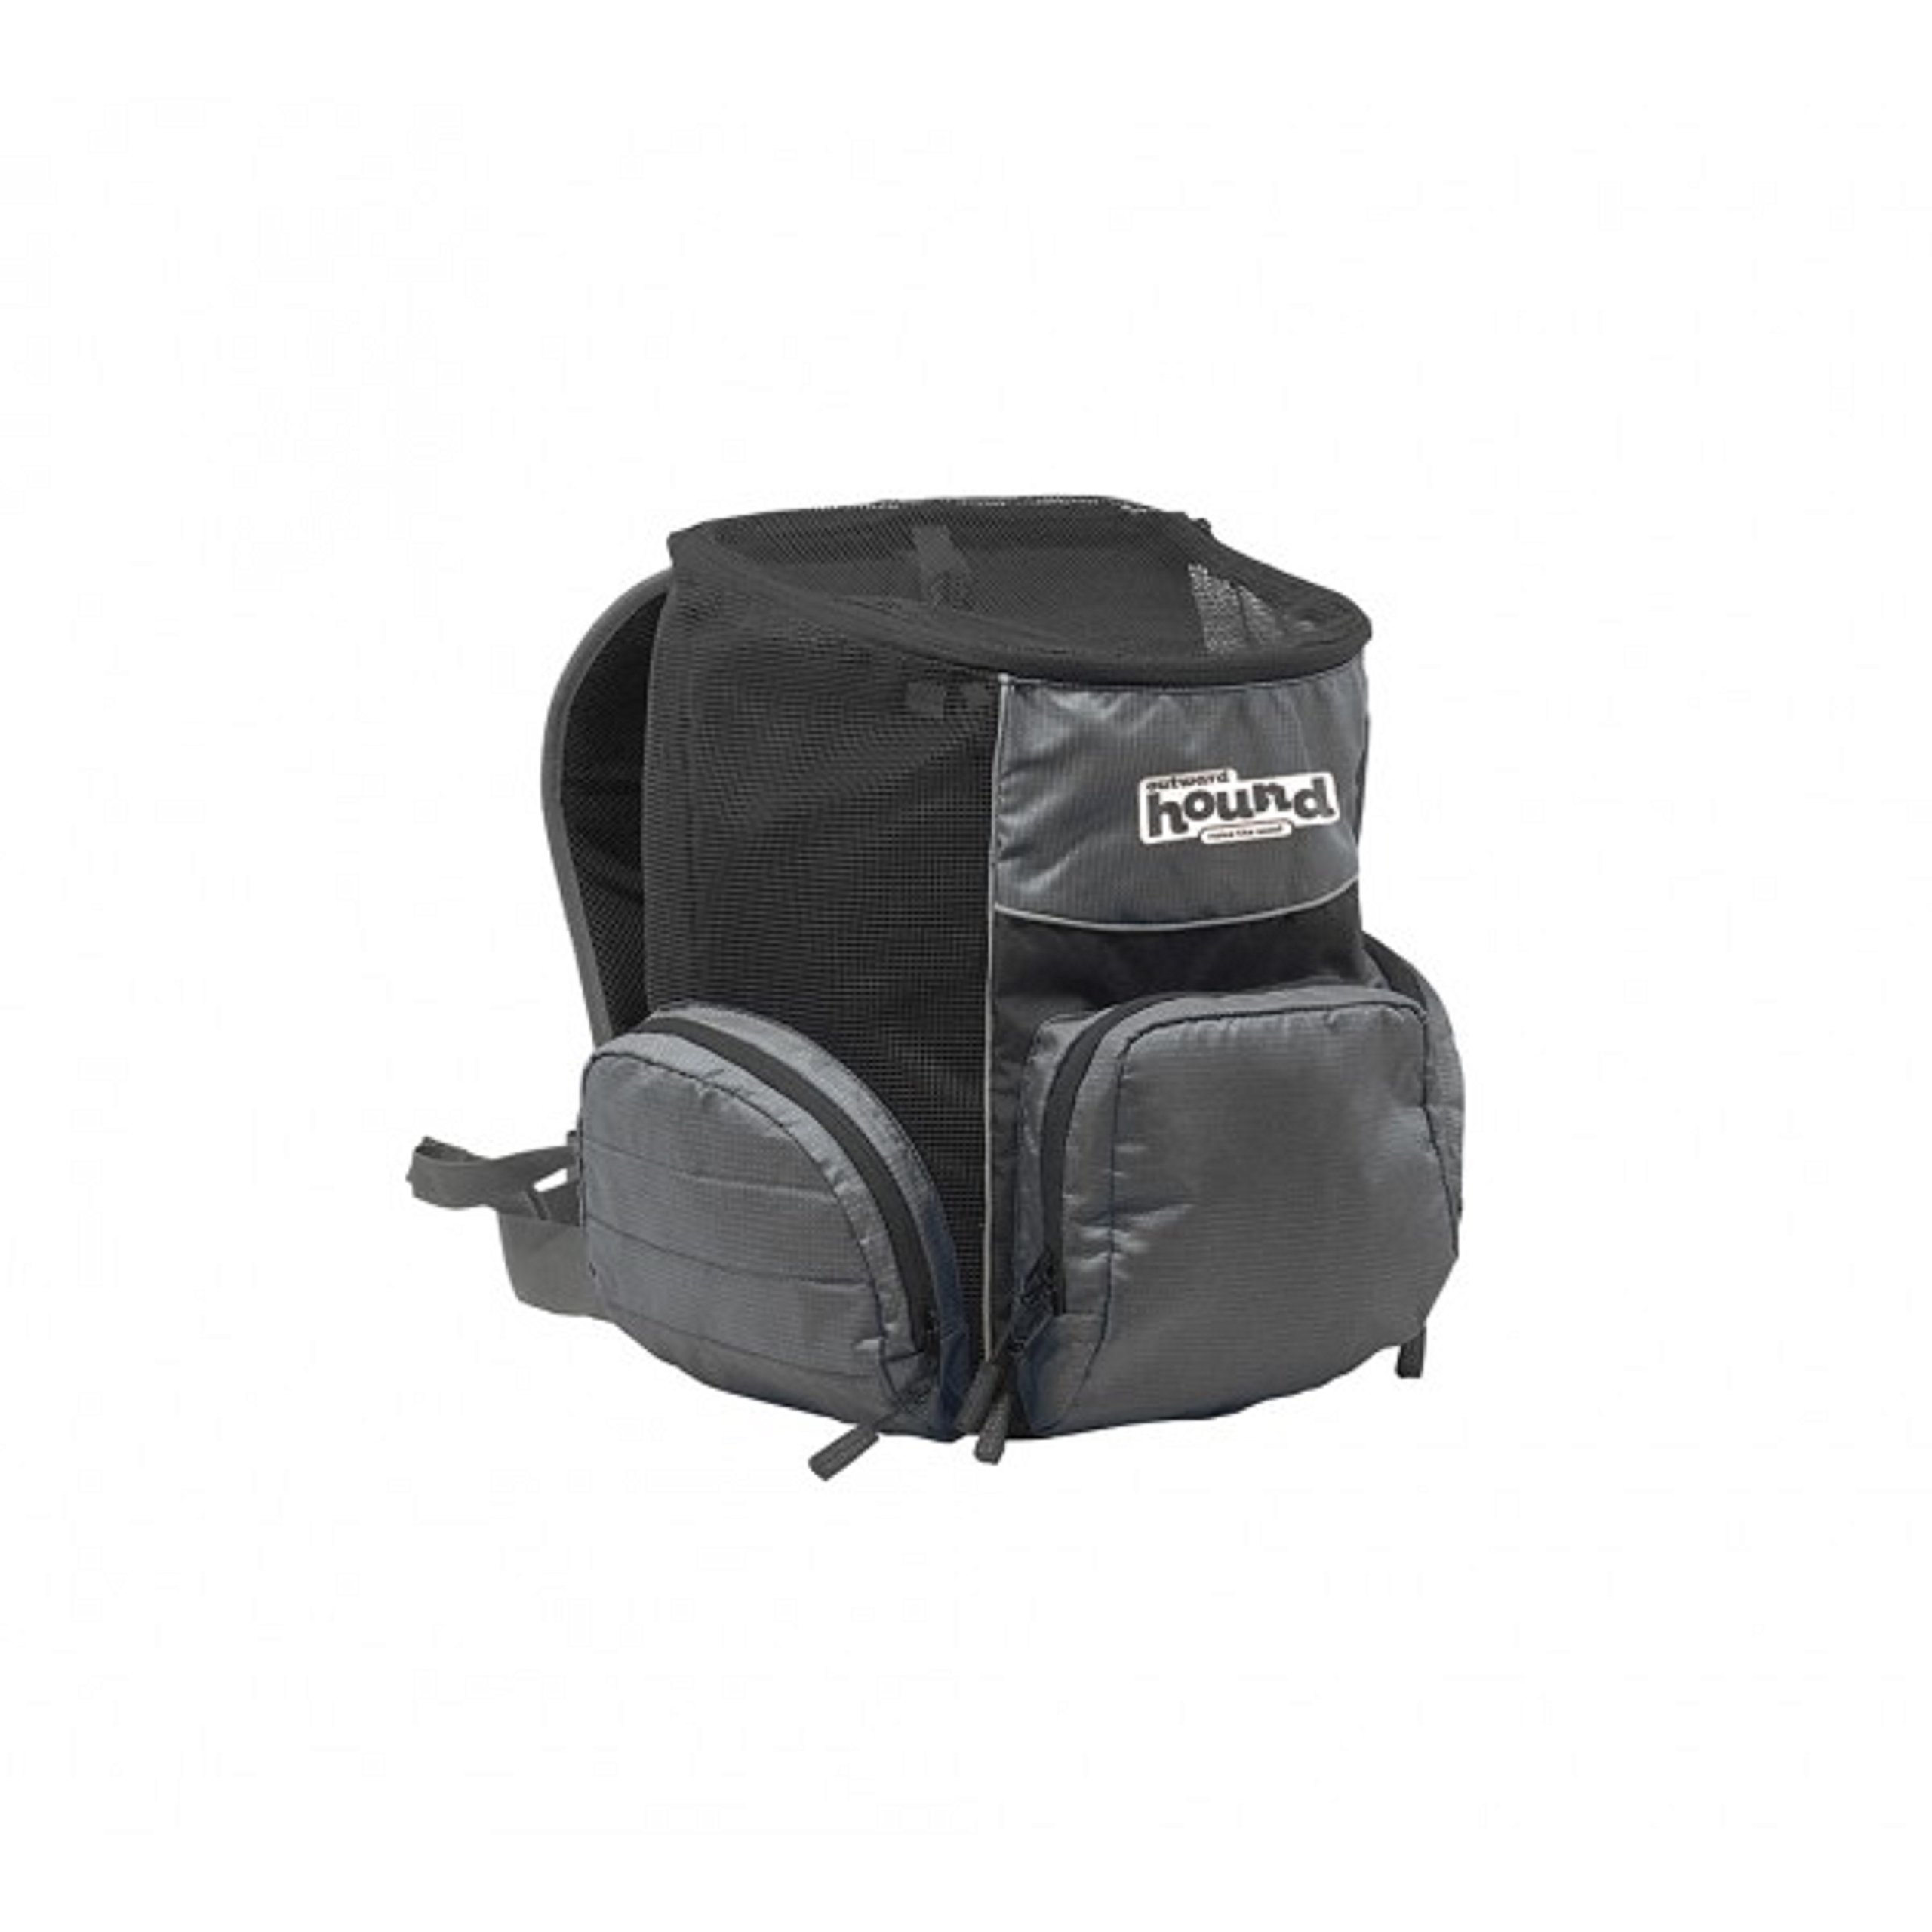 Outward Hound Poochpouch Dog Carrier, Backpack Carrier for Small Dogs